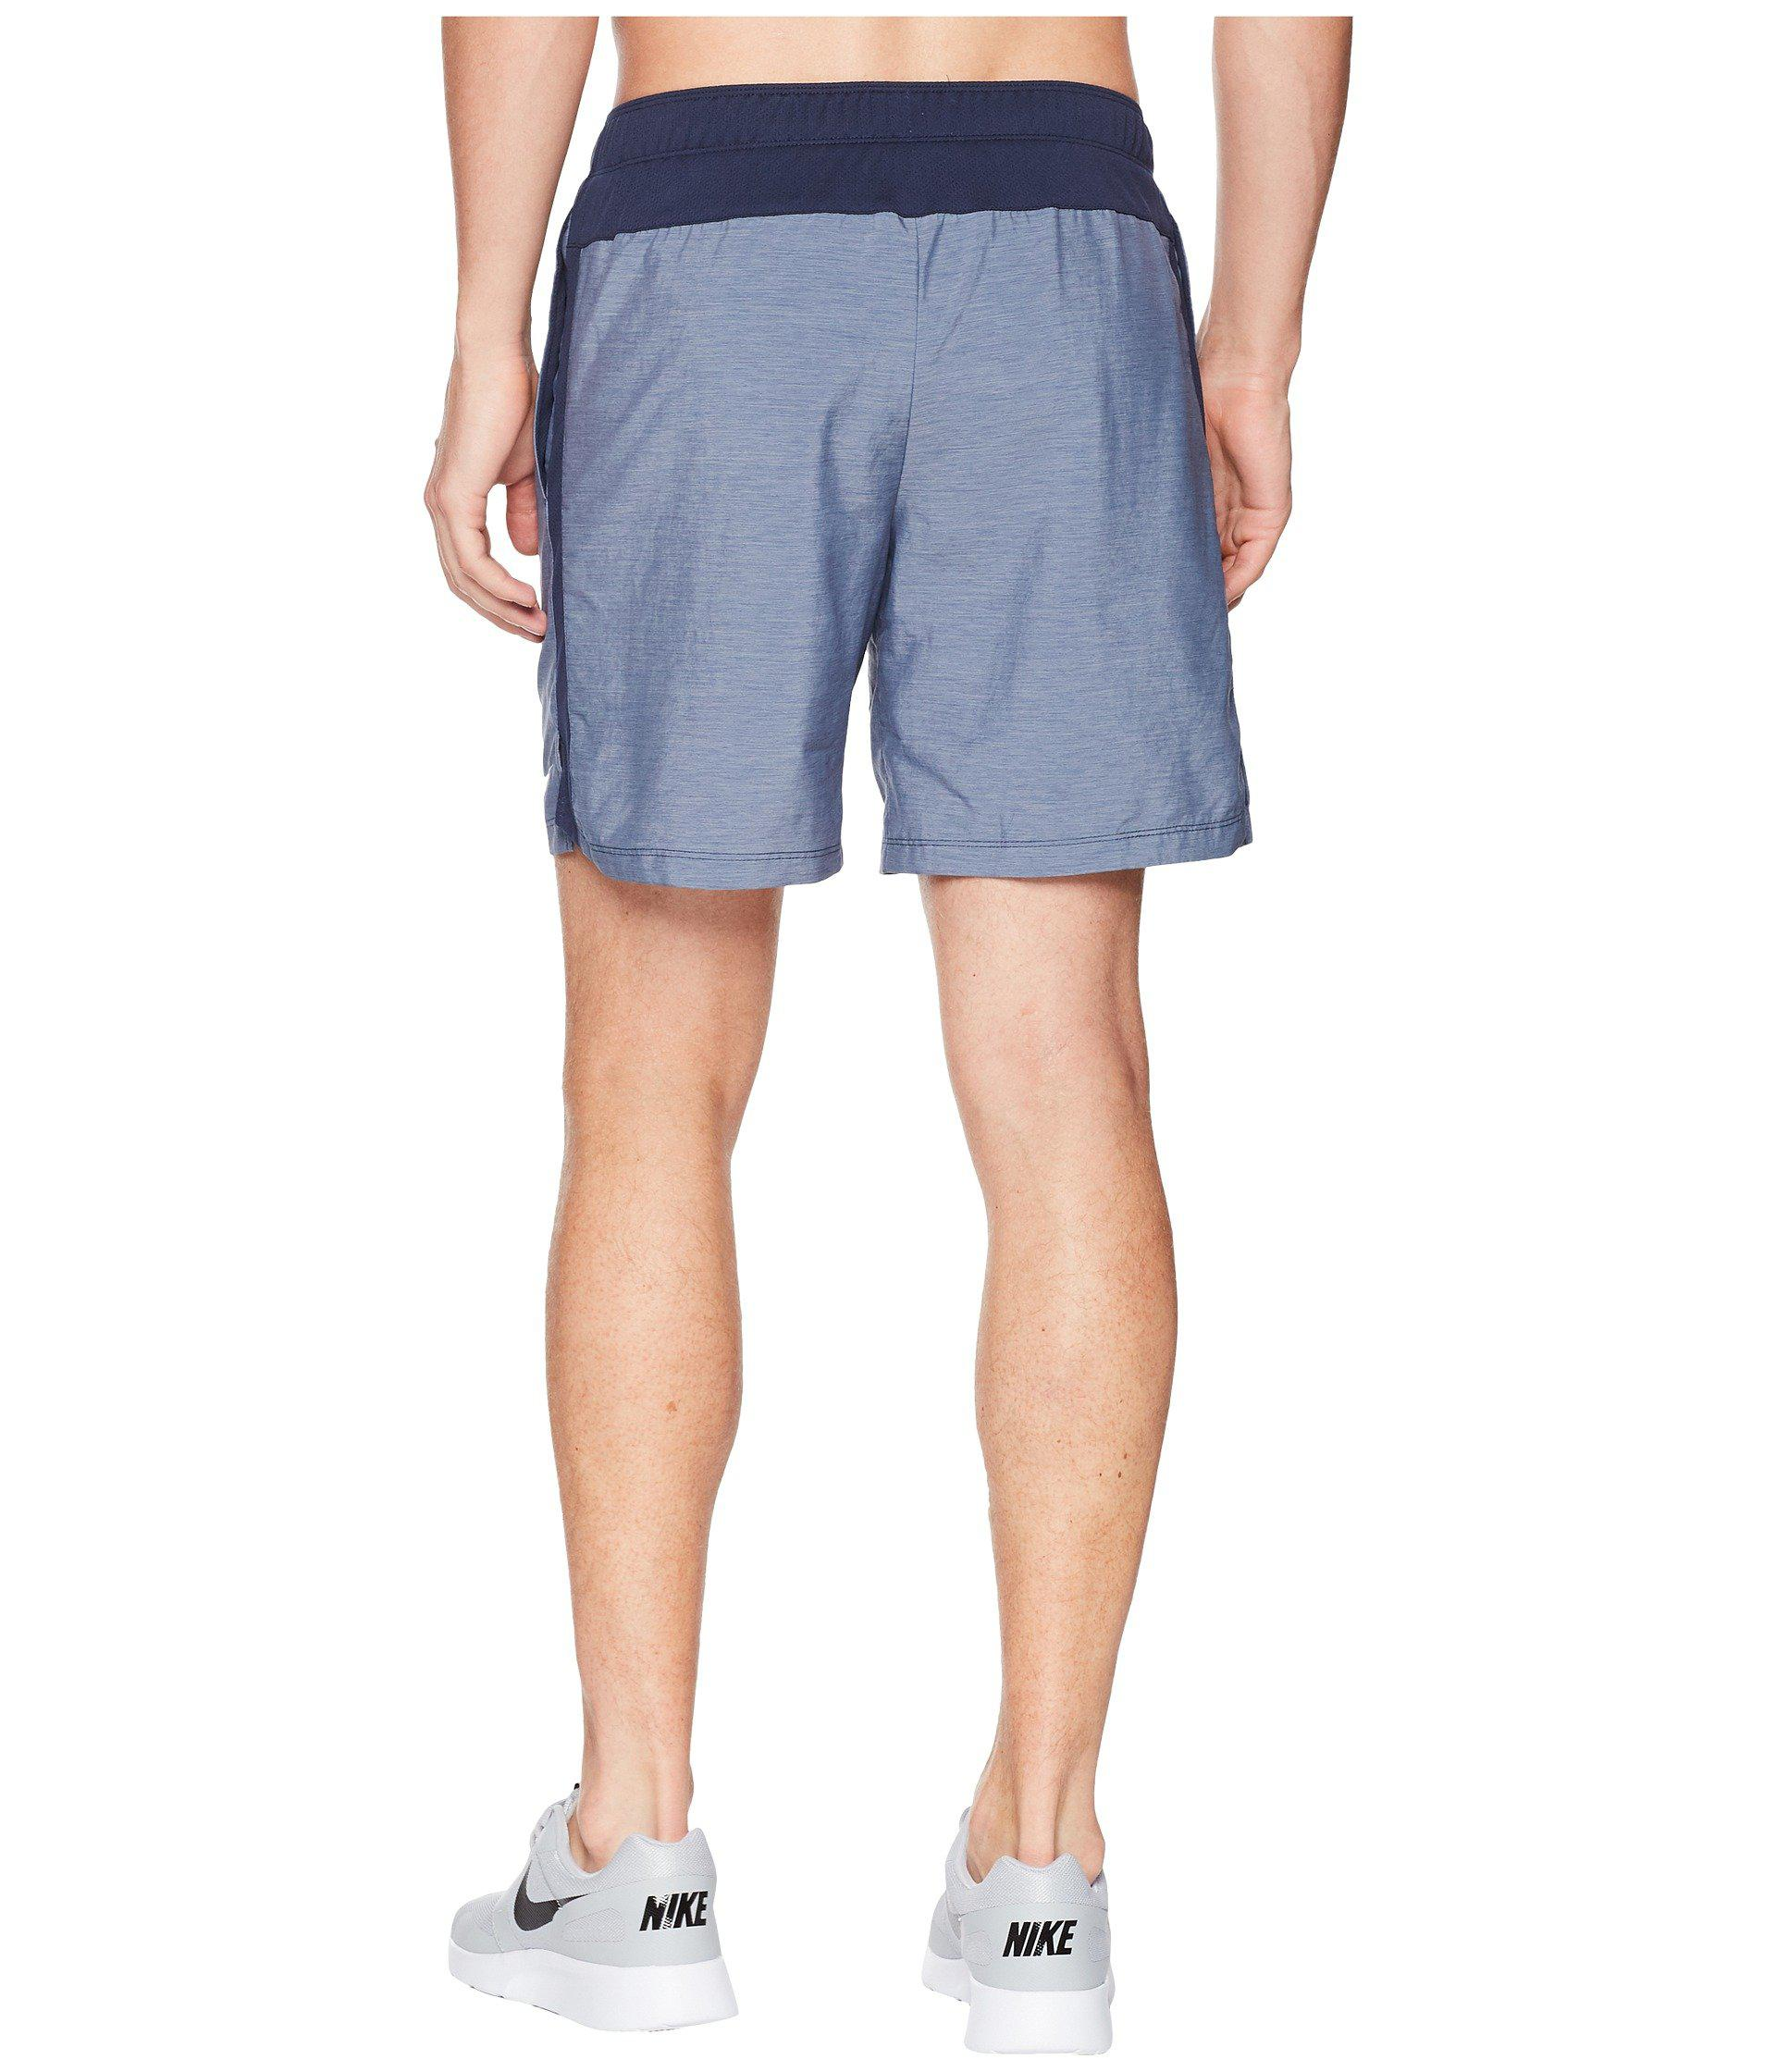 san francisco coupon codes new list Challenger 7 Dri-fit Running Short (green Abyss/green Abyss/hyper Jade)  Men's Shorts